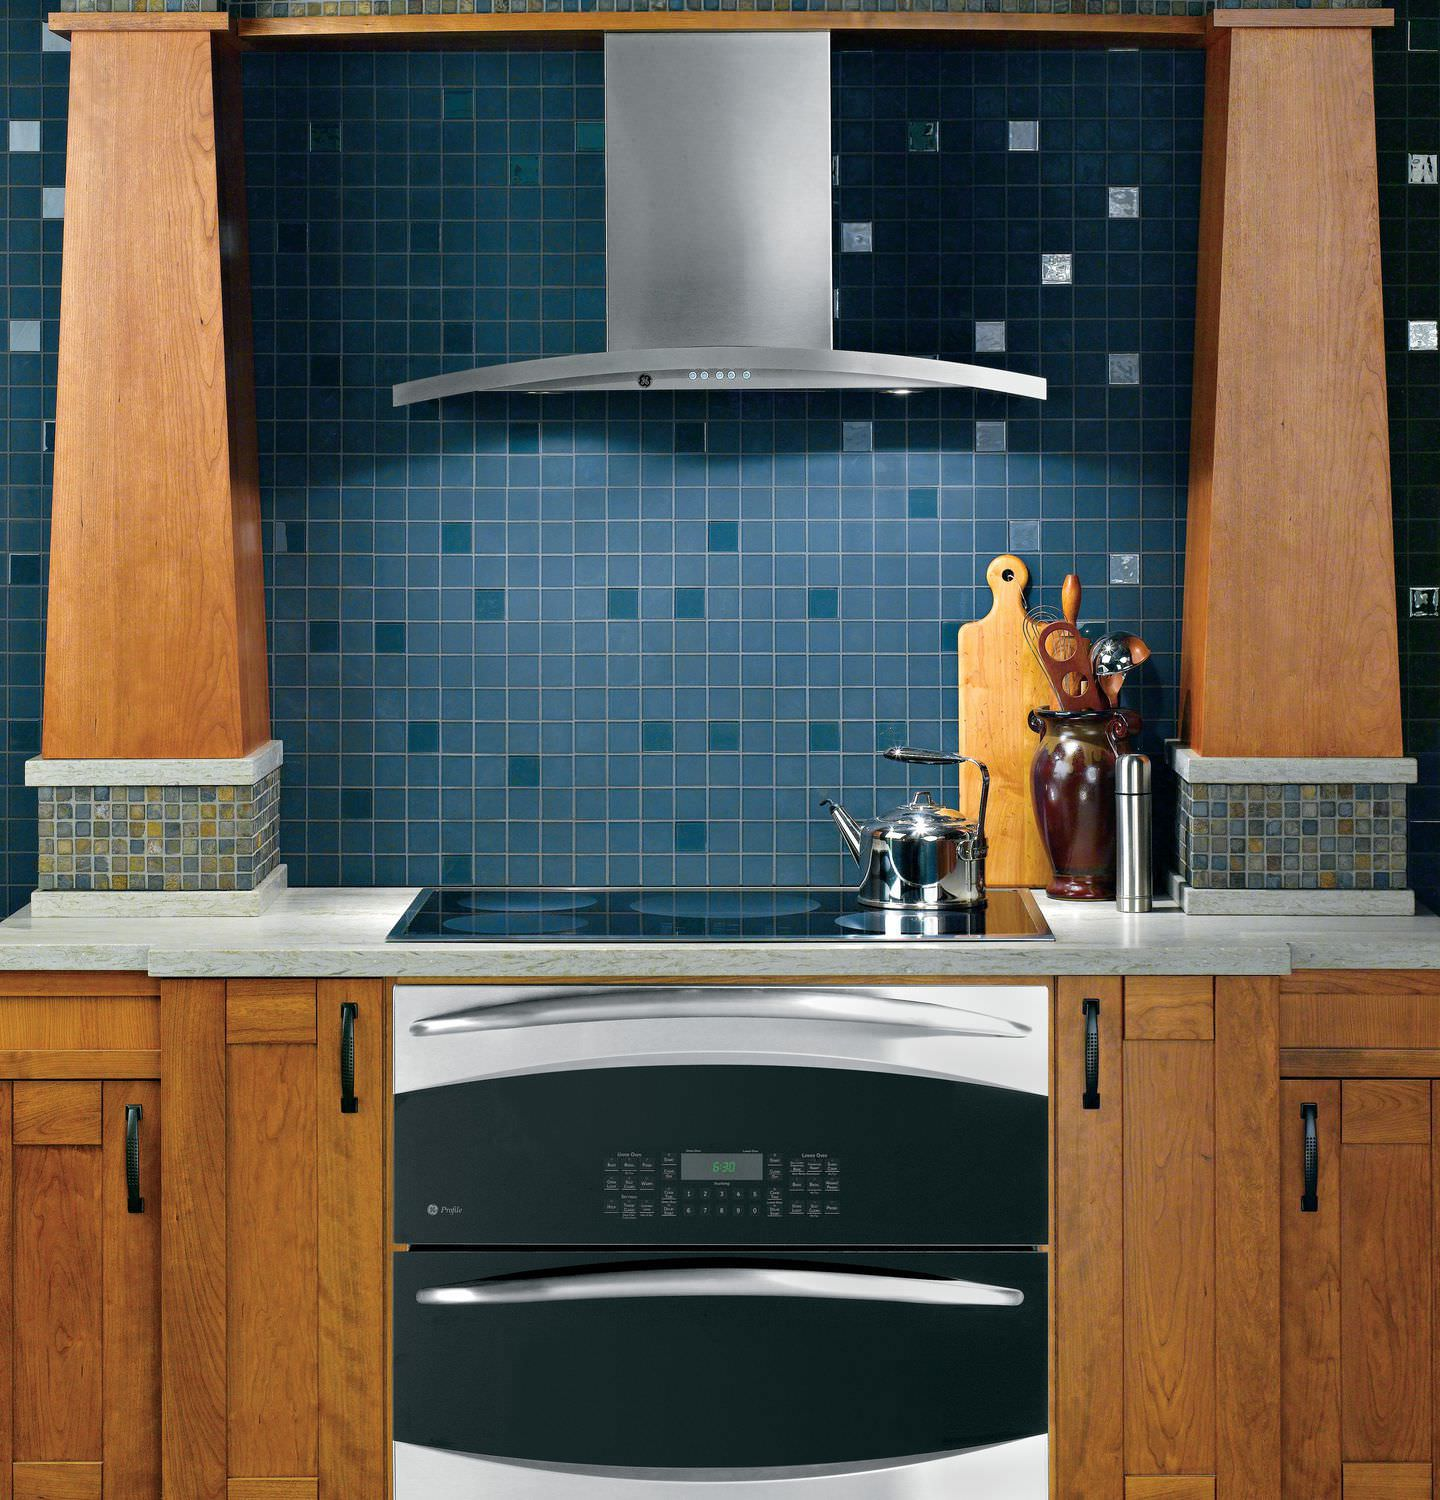 Wall-mounted range hood / with built-in lighting - PV976NSS ...